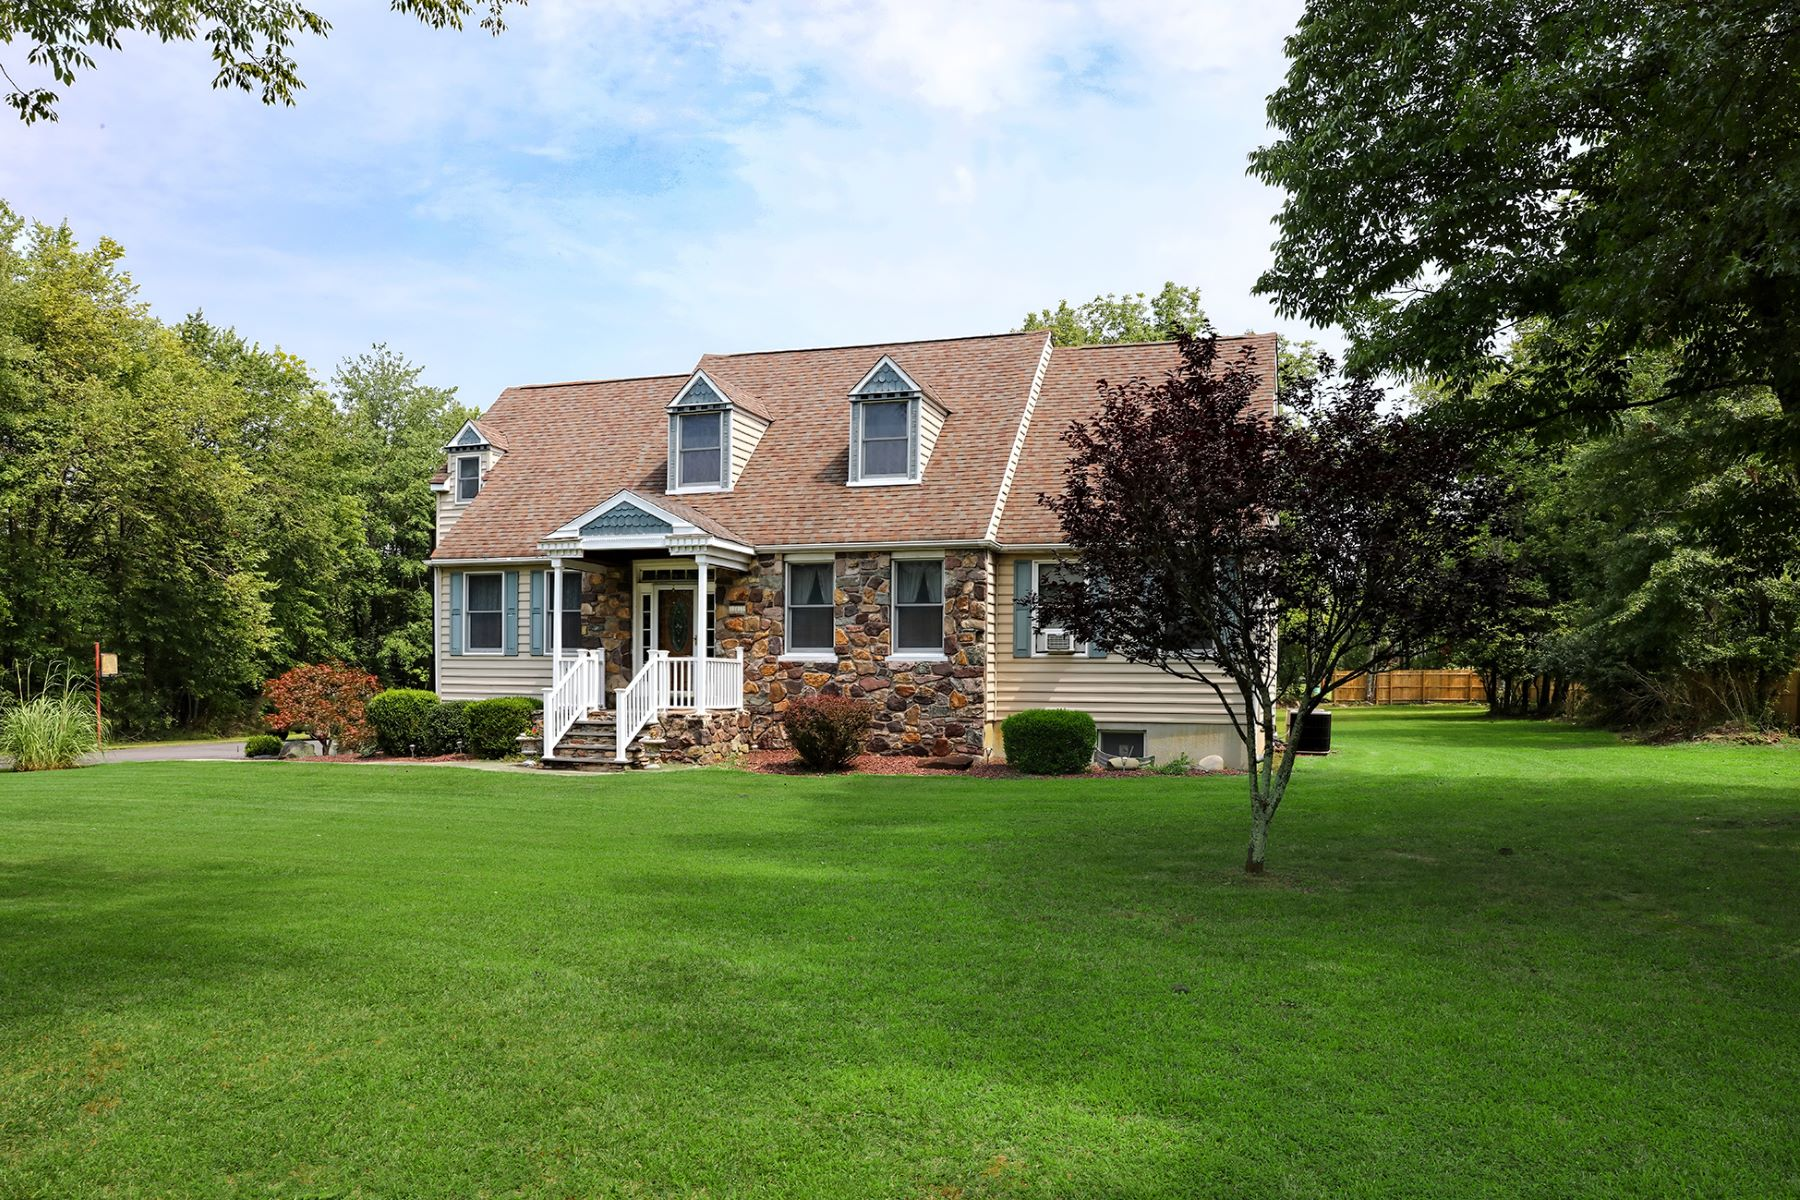 Single Family Homes for Sale at A Bucolic Setting To Showcase This Custom Home 263 Goat Hill Road Lambertville, New Jersey 08530 United States